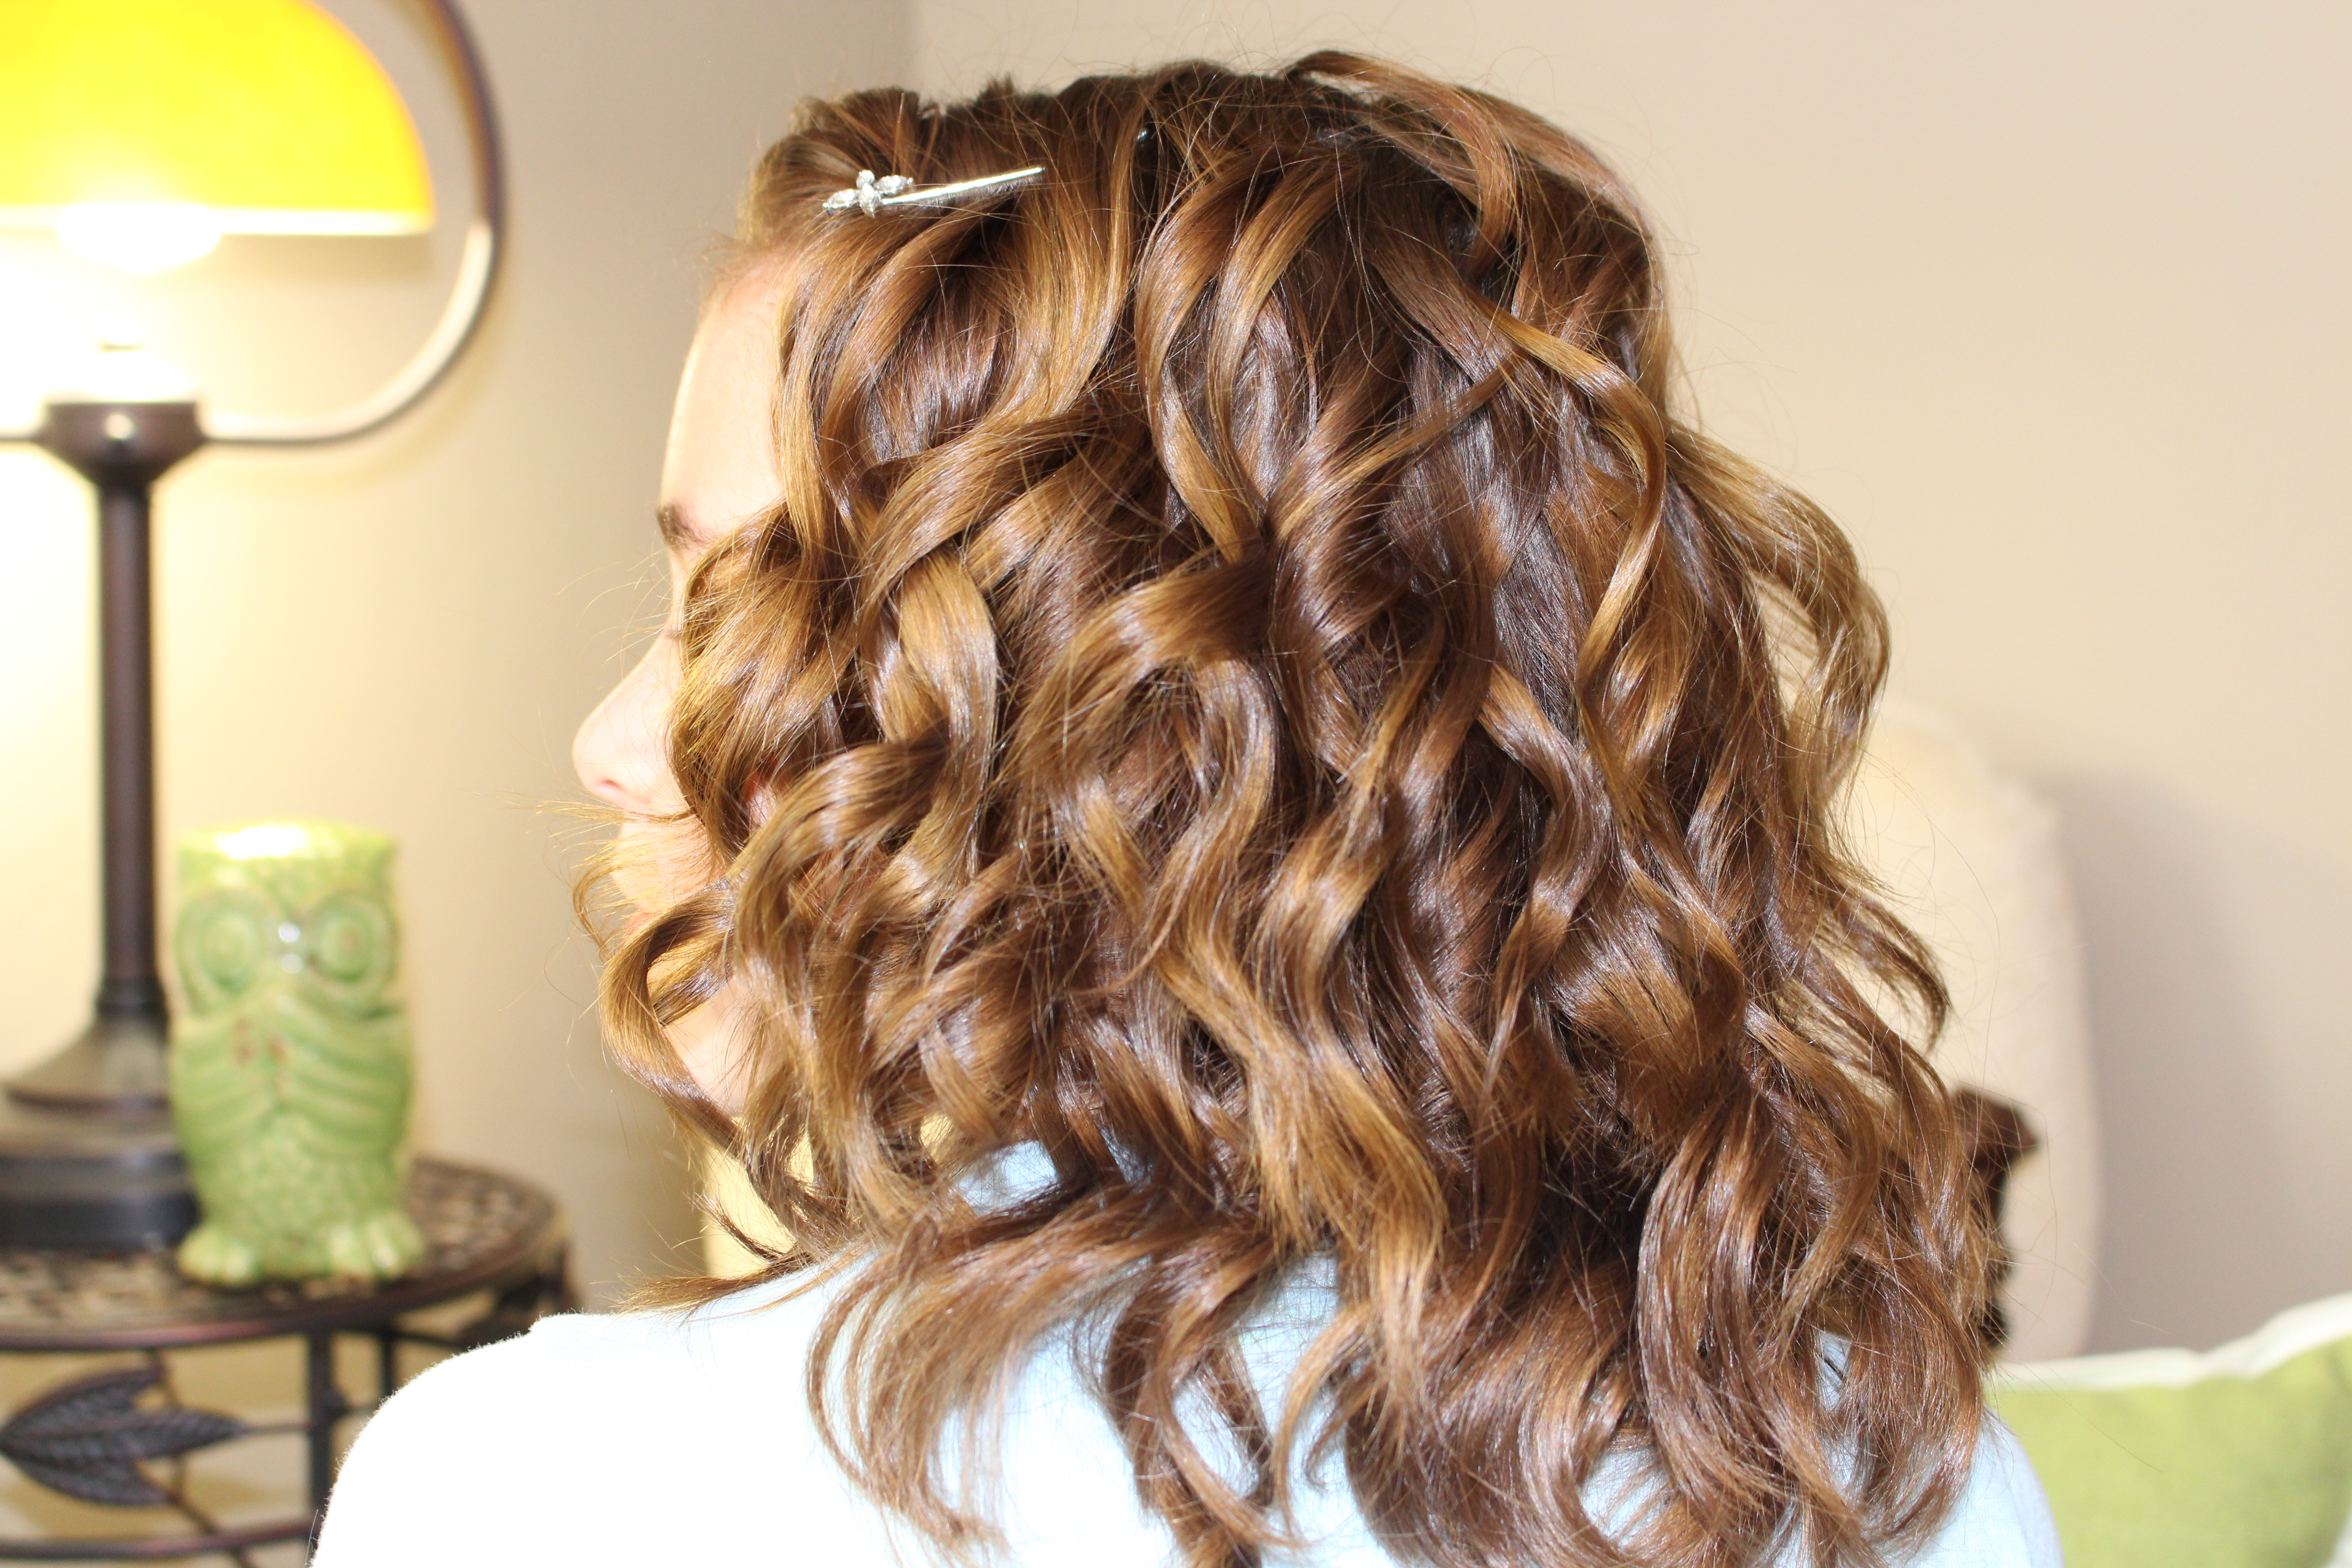 It Gives Gorgeous Curls See Below And Watch For My Upcoming Video That Demonstrates HOW To Get These Using A Wand